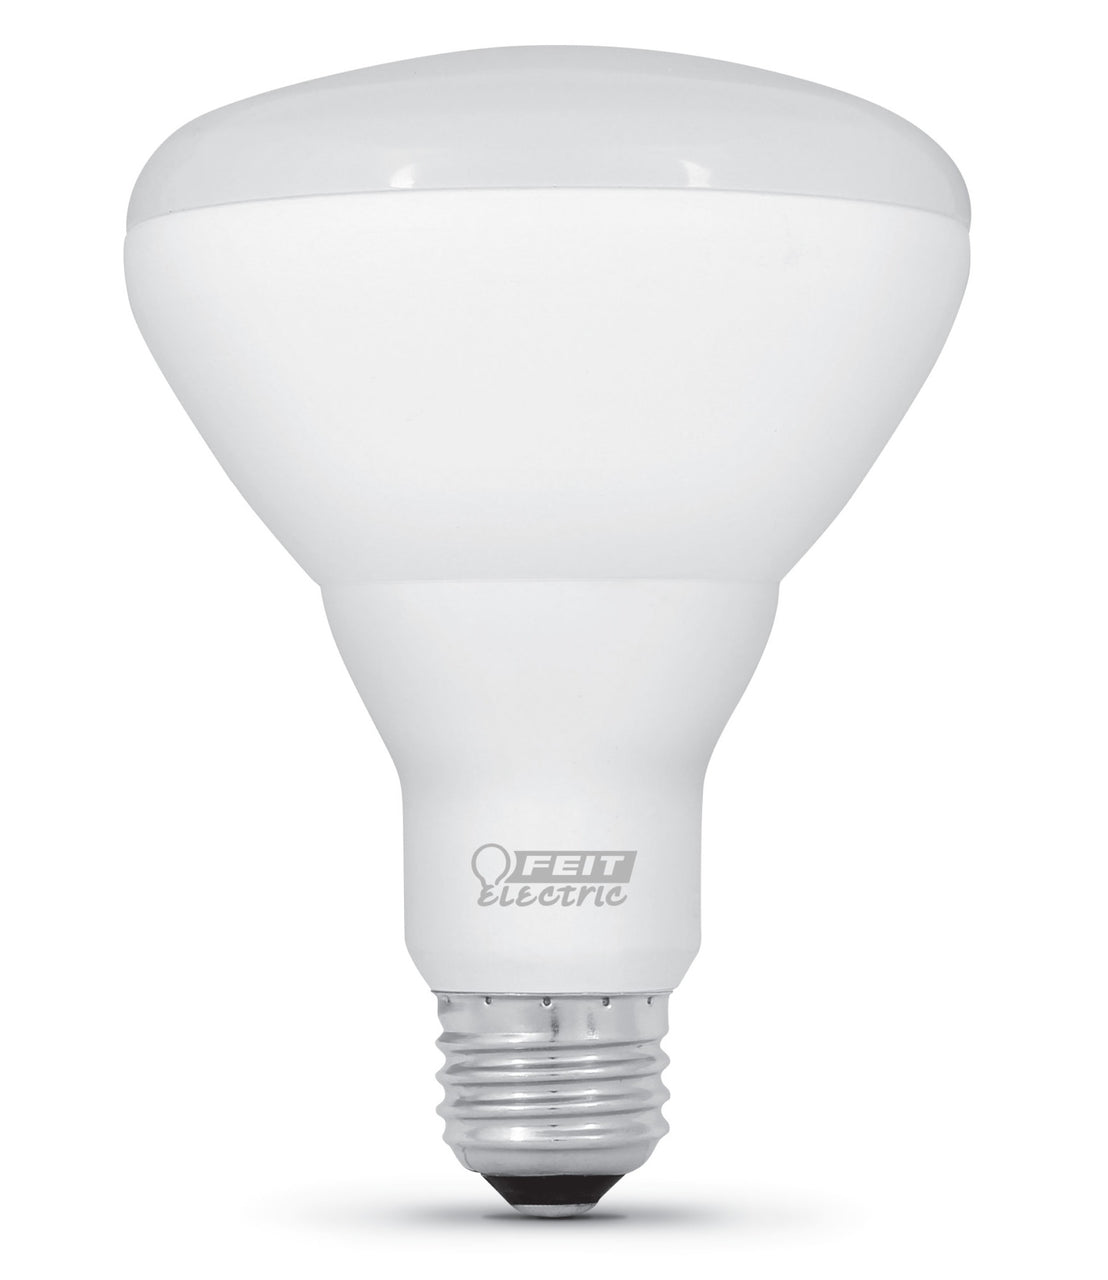 Feit Electric BR30DM/927CA/6 Reflector LED Bulb, 7.2 Watts, 120 Volts